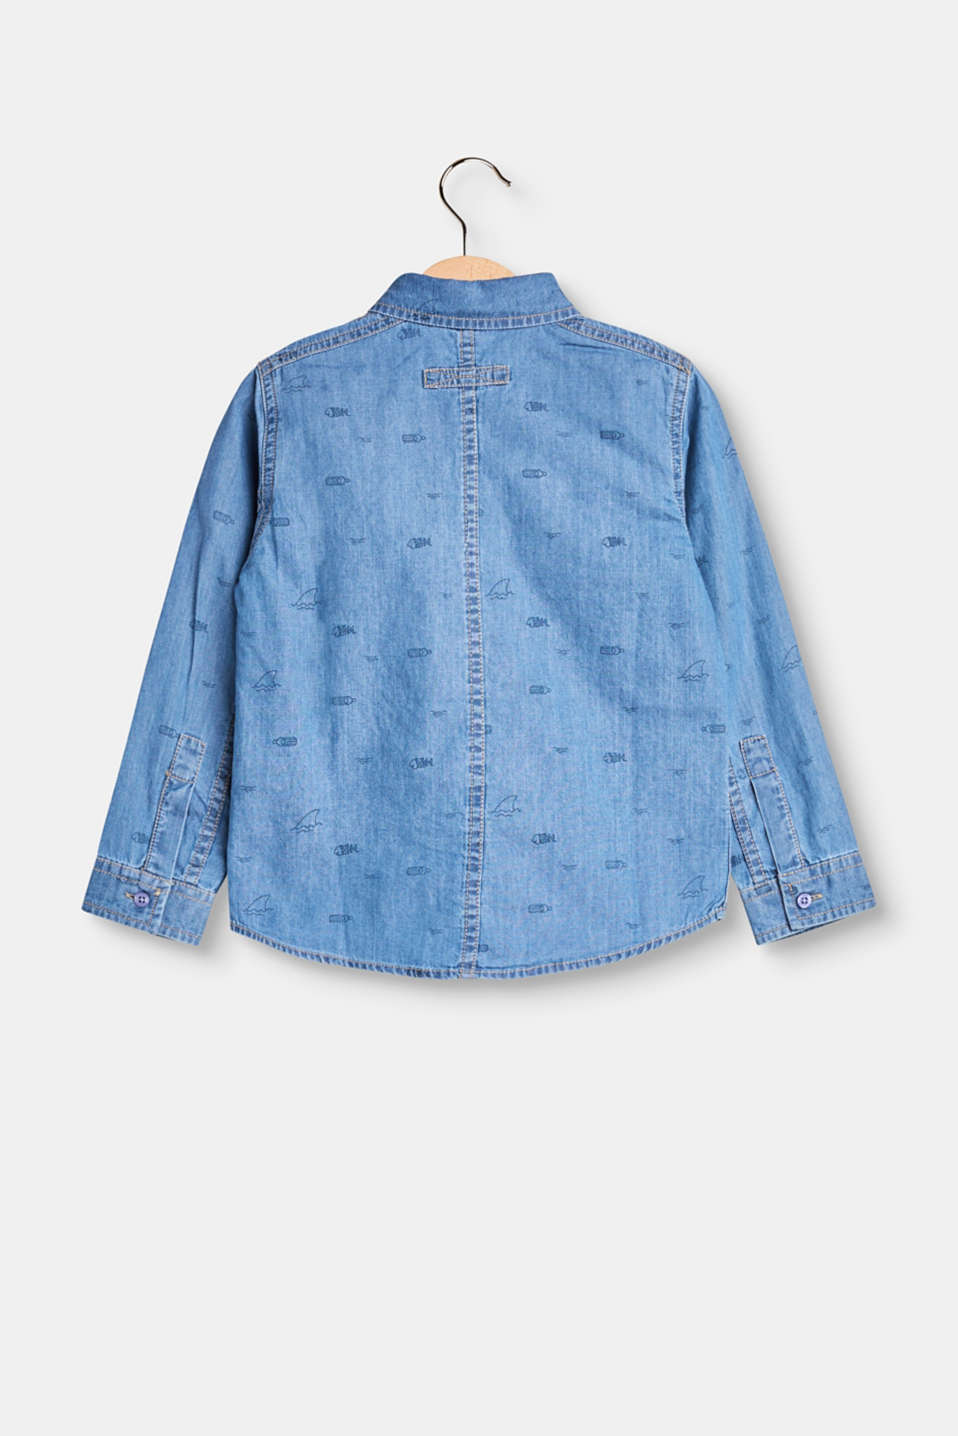 Denim shirt with an all-over print, cotton